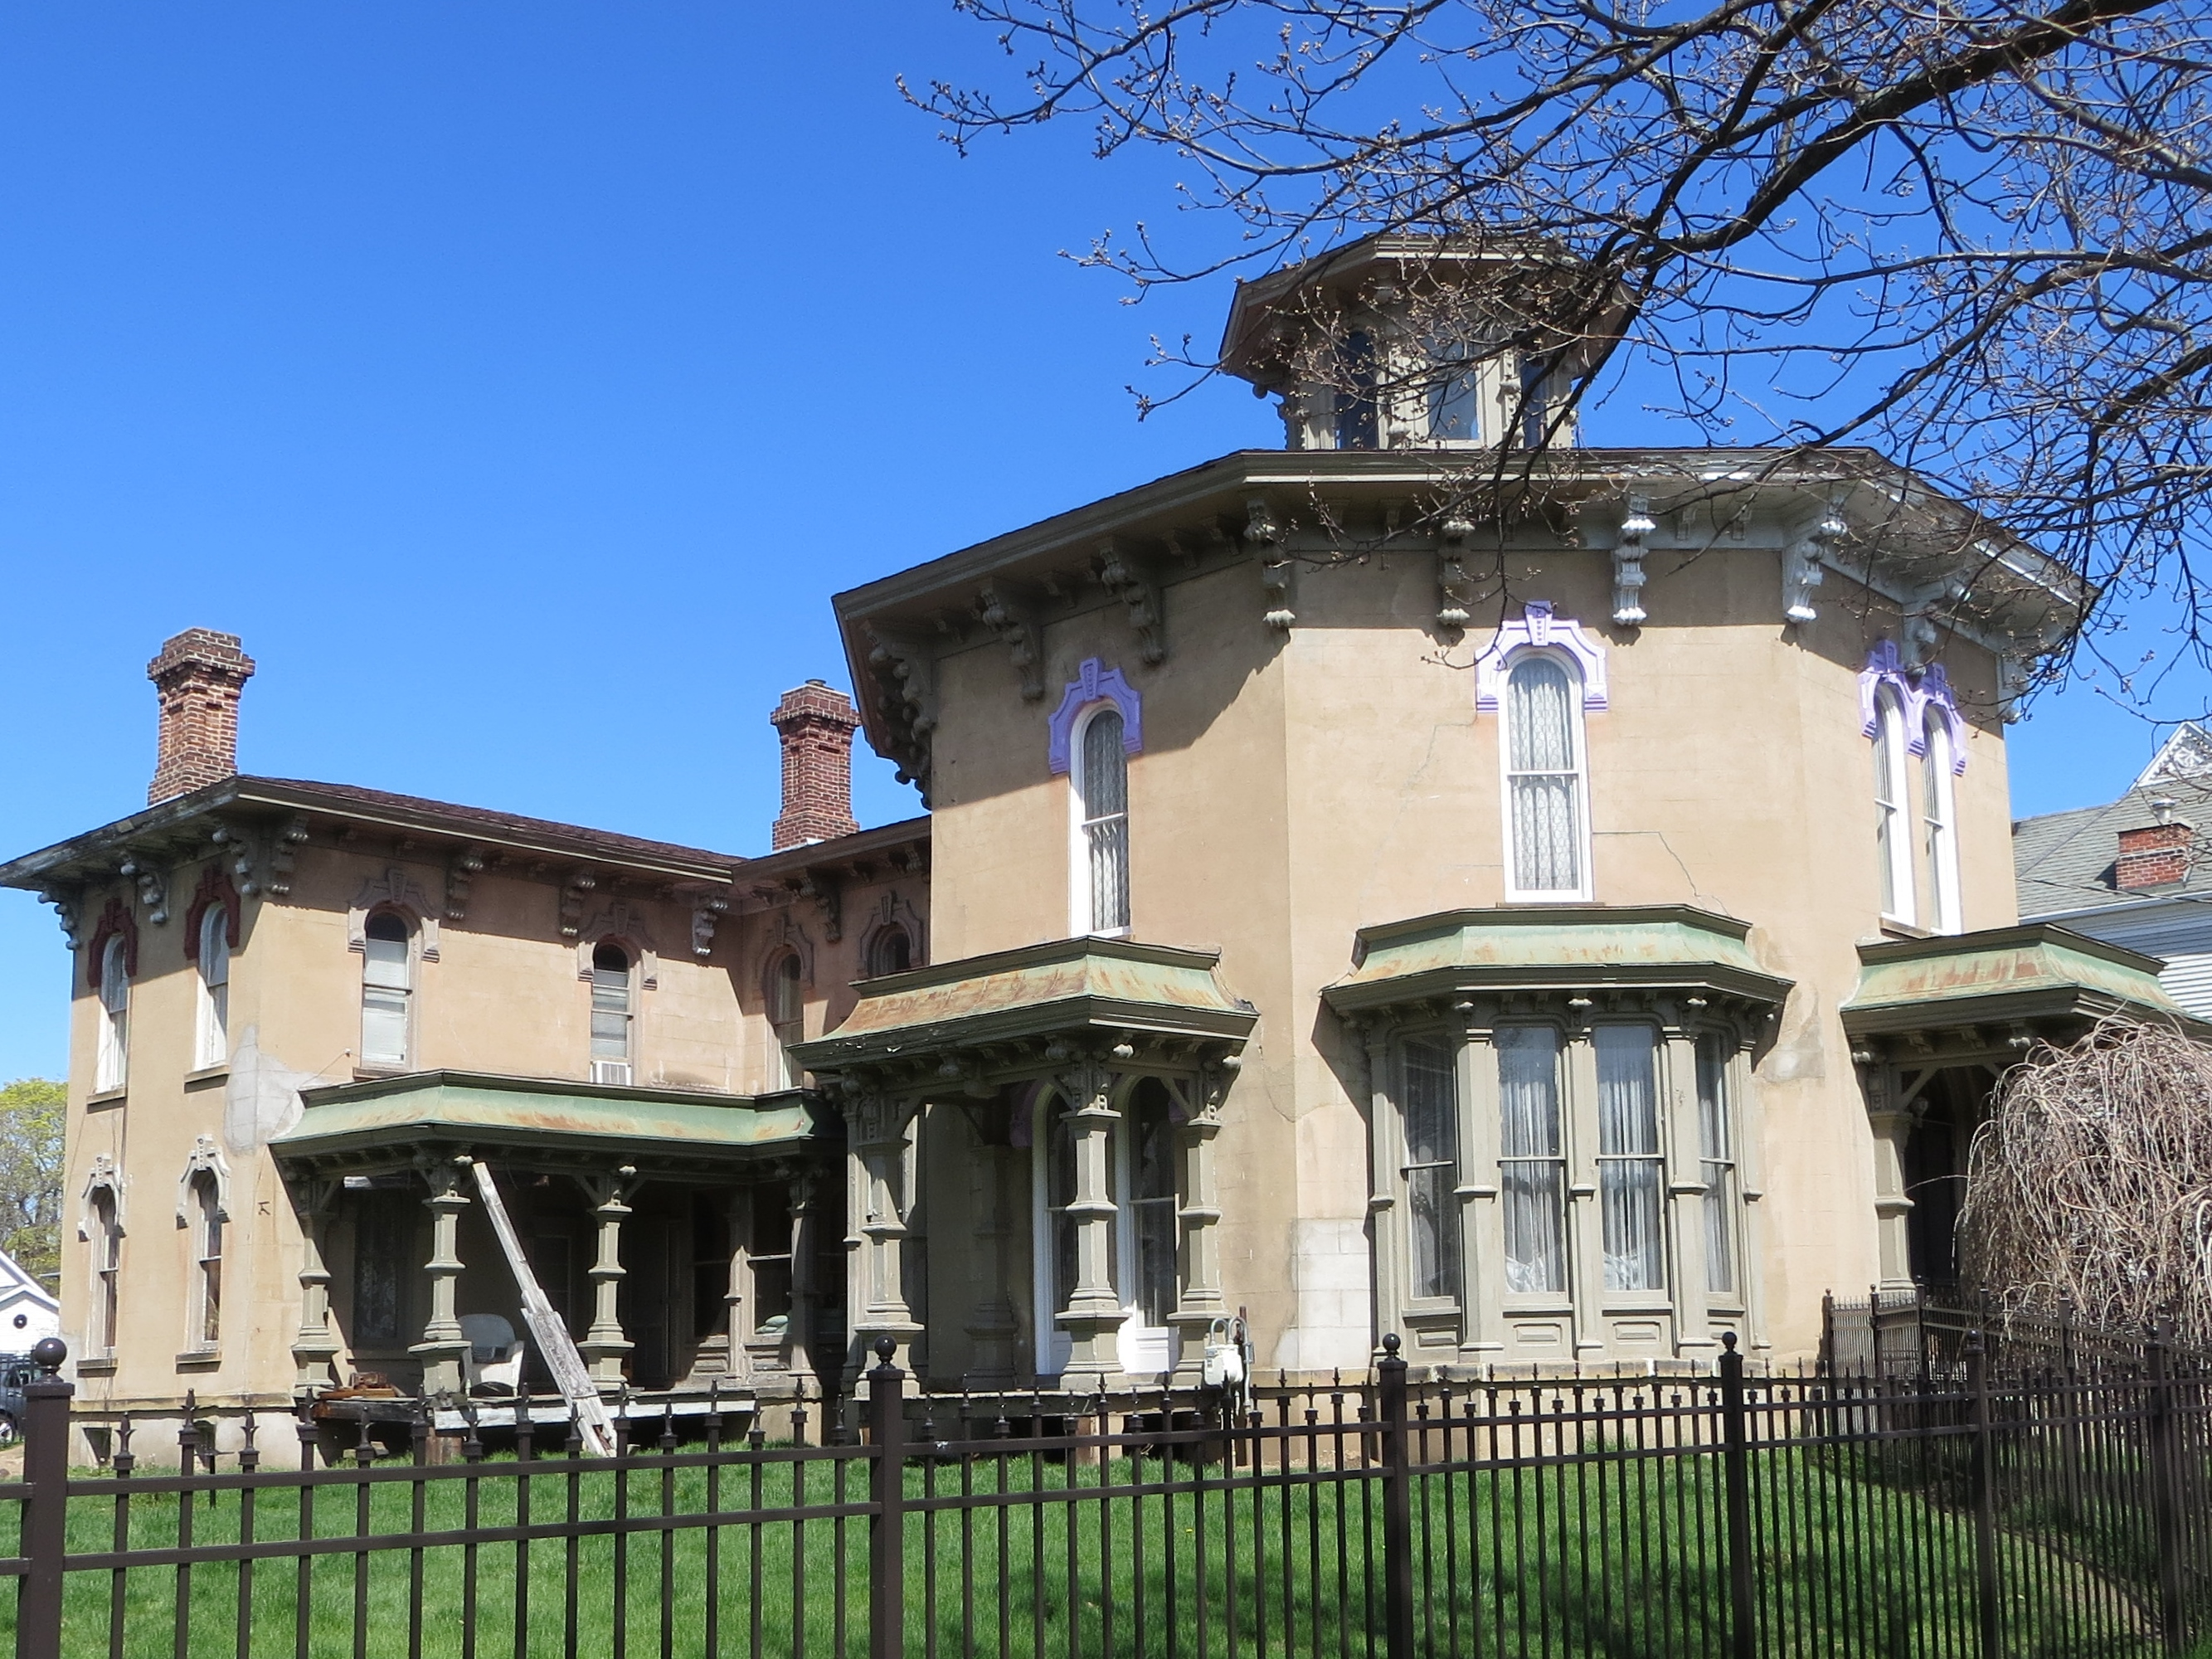 Octagon house on marshall historic home tour september 12 for Octagon homes